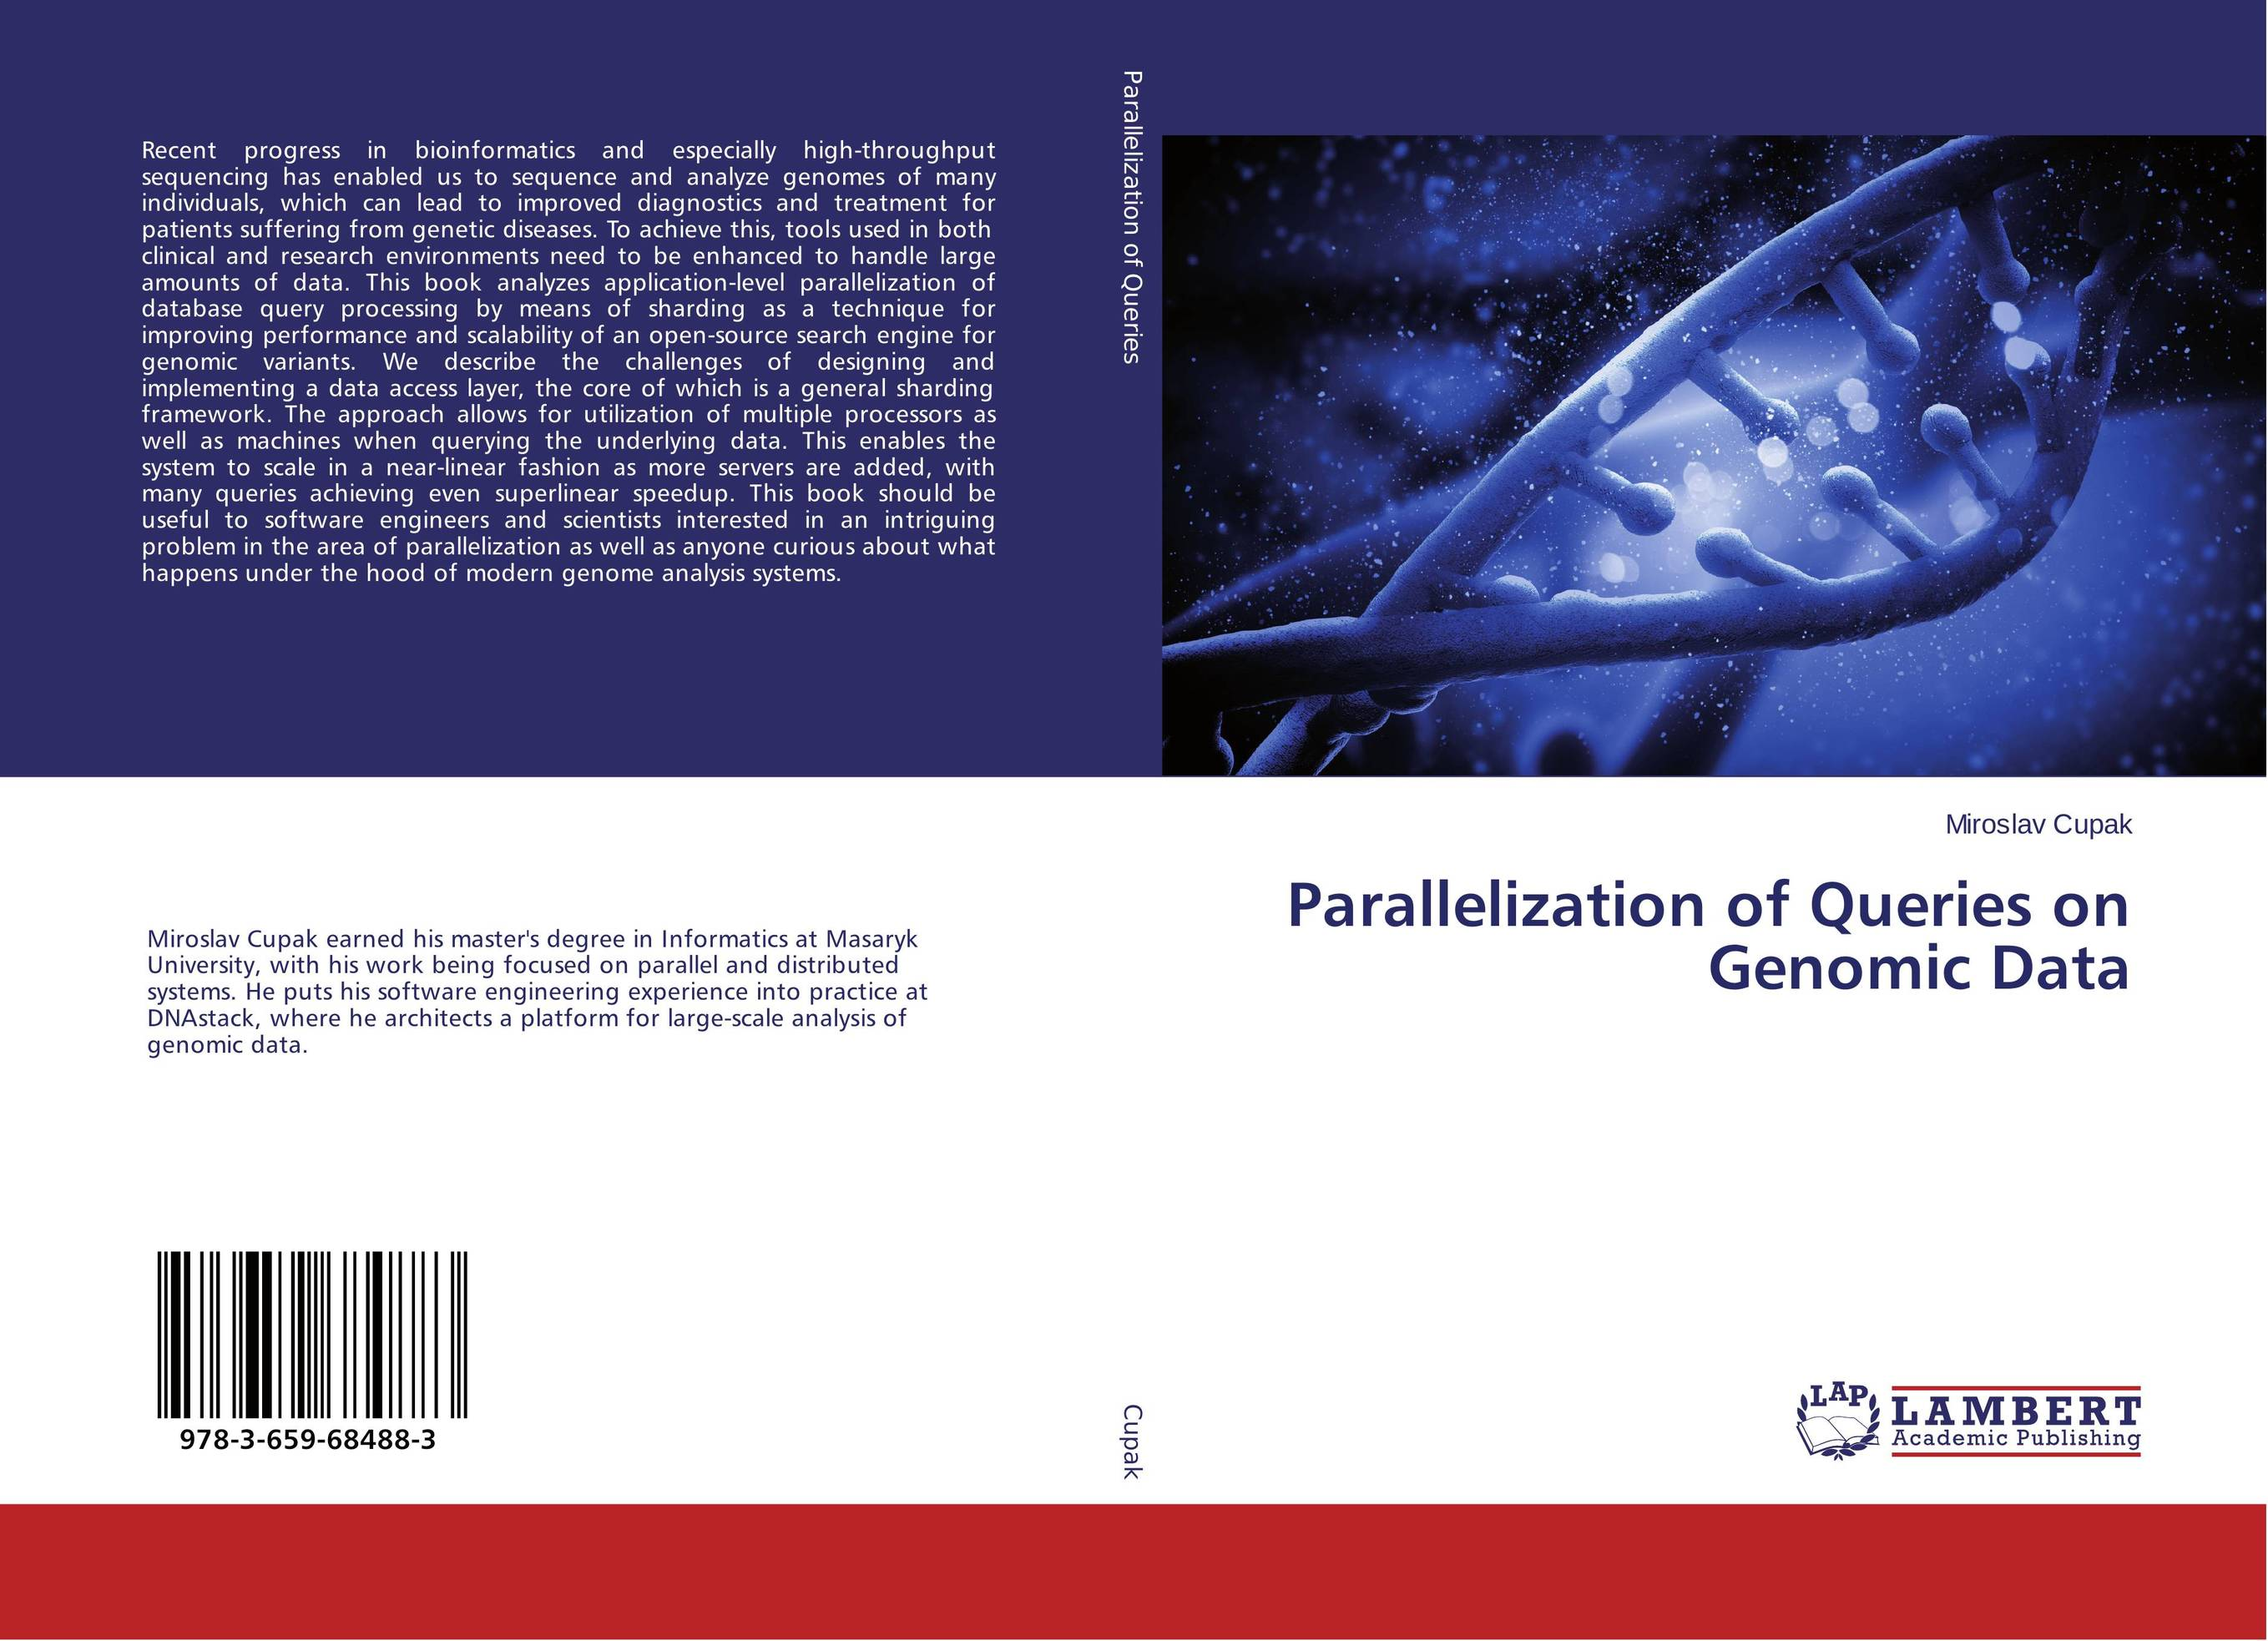 Parallelization of Queries on Genomic Data thermo operated water valves can be used in food processing equipments biomass boilers and hydraulic systems